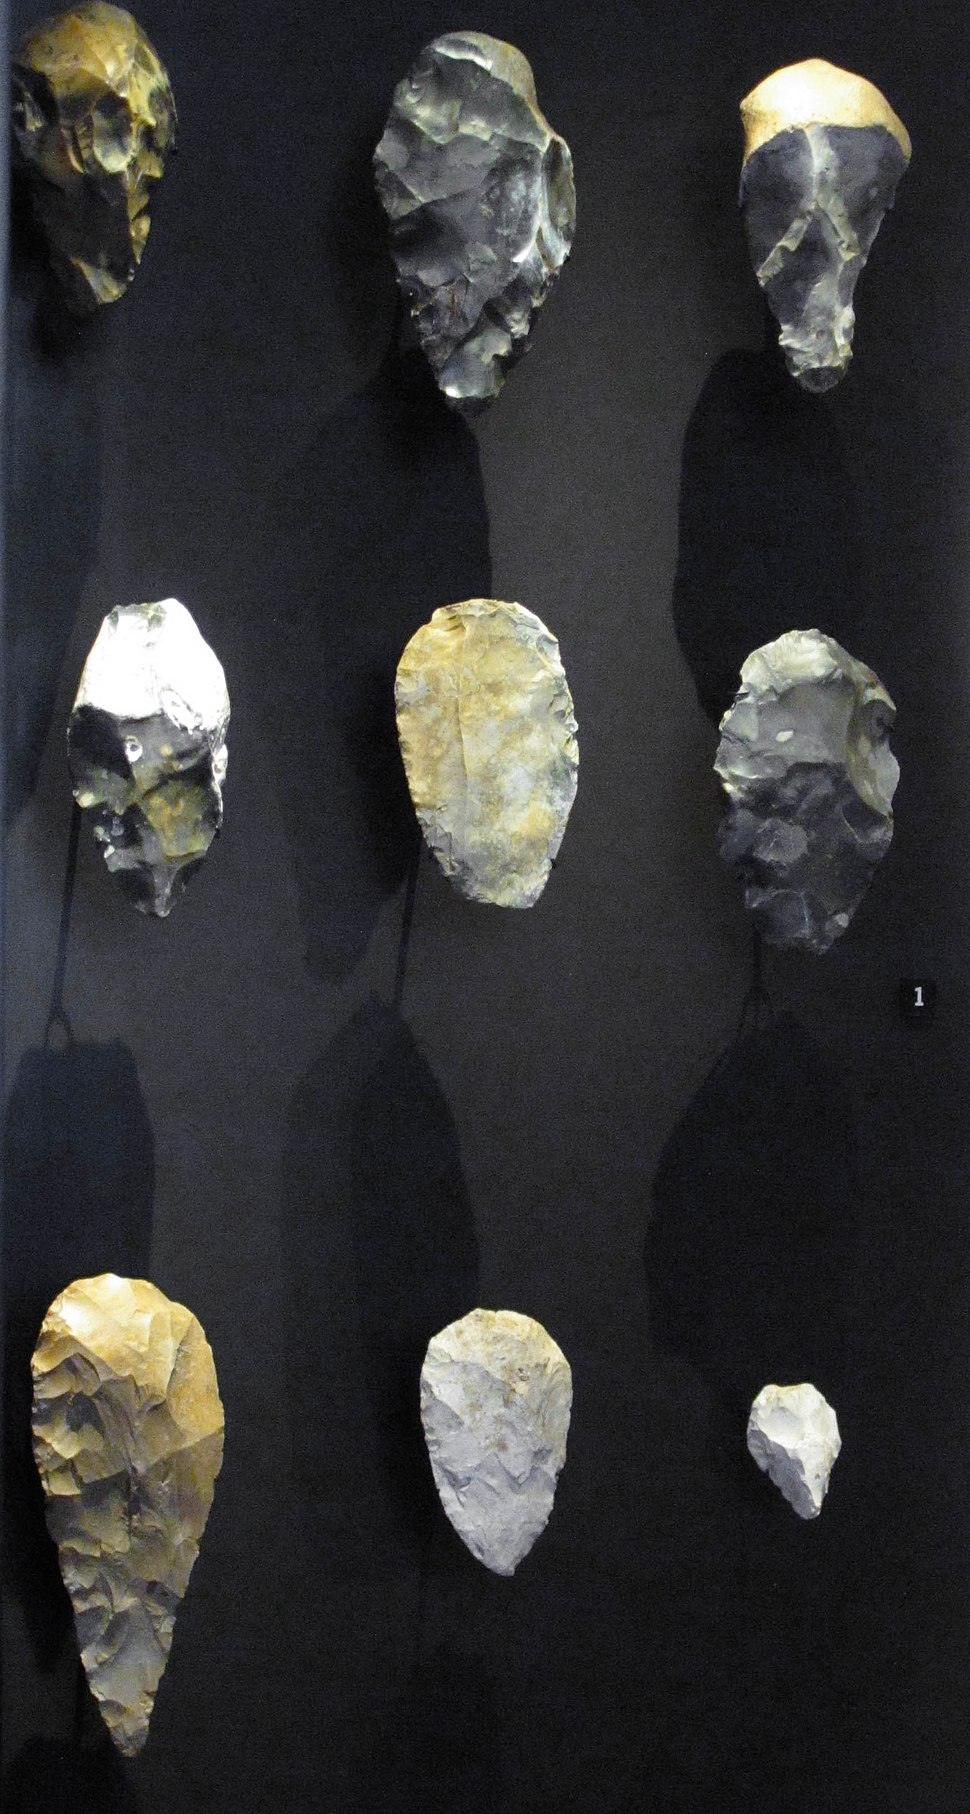 Acheulean implements. Flint. Abbeville, St Acheul. Neues Museum